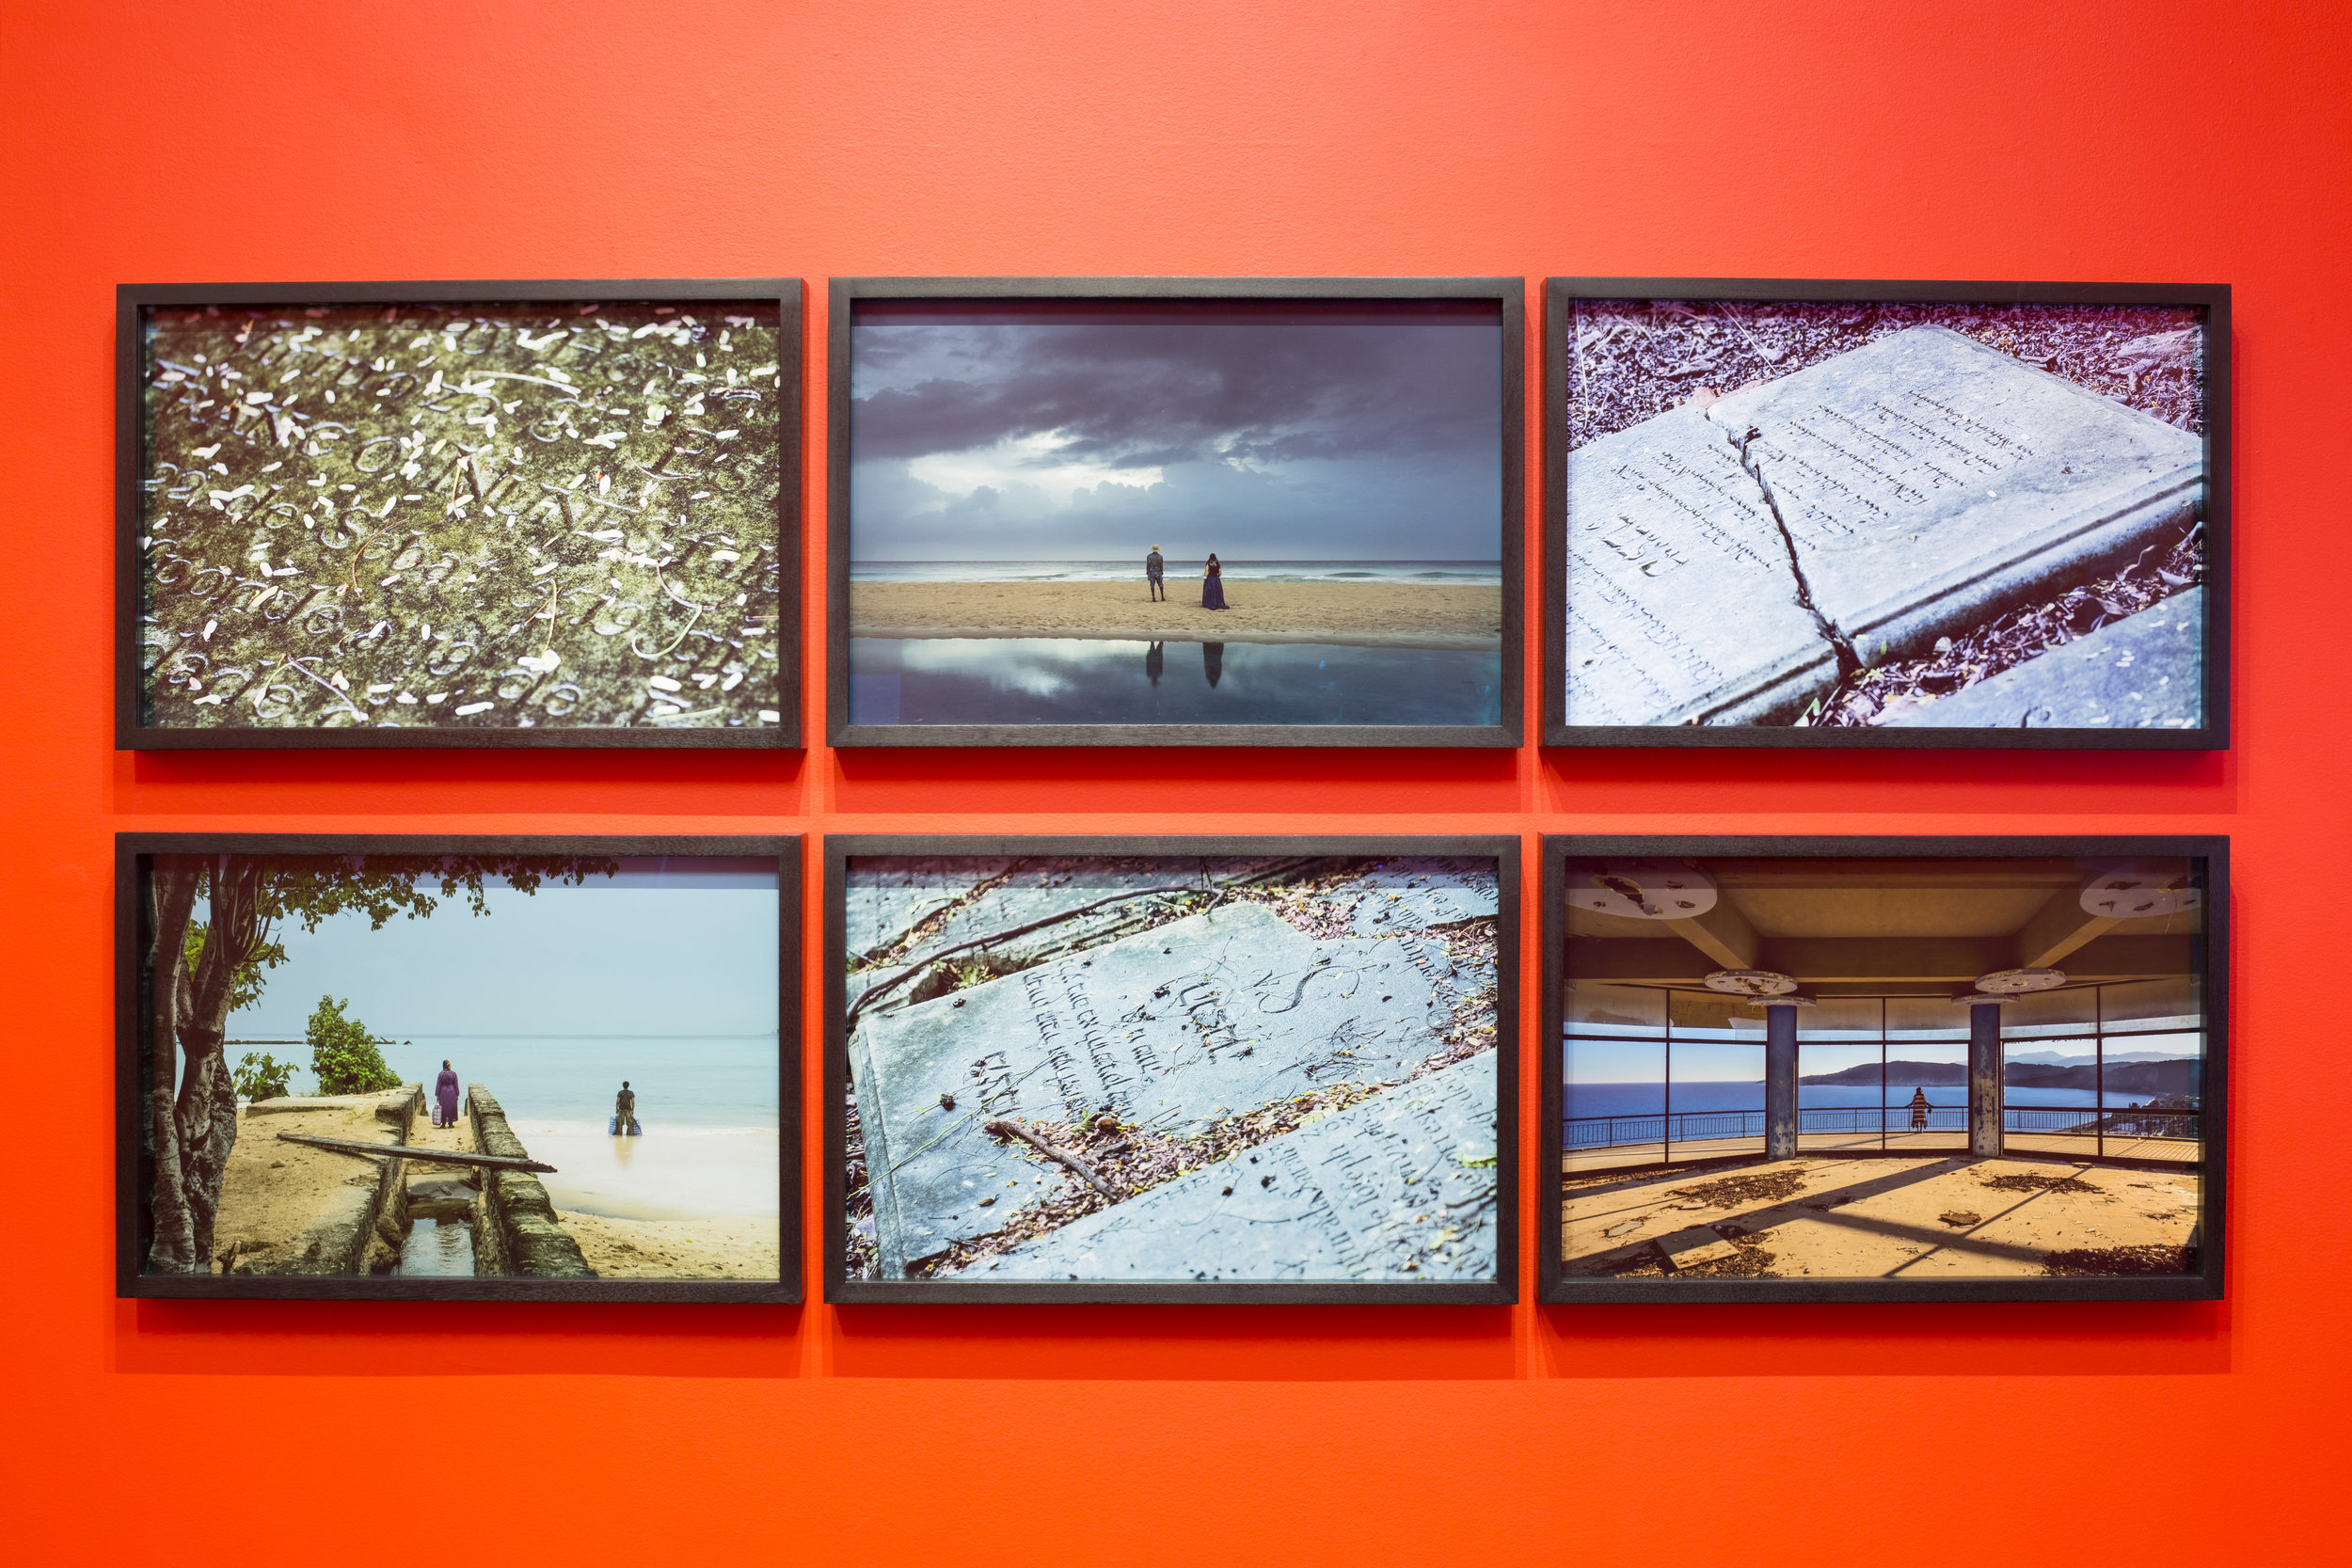 John Akomfrah,  The Utopian Palimpsest  (2016). 6 x C-type prints mounted on dibond 43.2 x 63.5 cm each frame. © Smoking Dogs Films; Courtesy Lisson Gallery. Photography Mads Holm